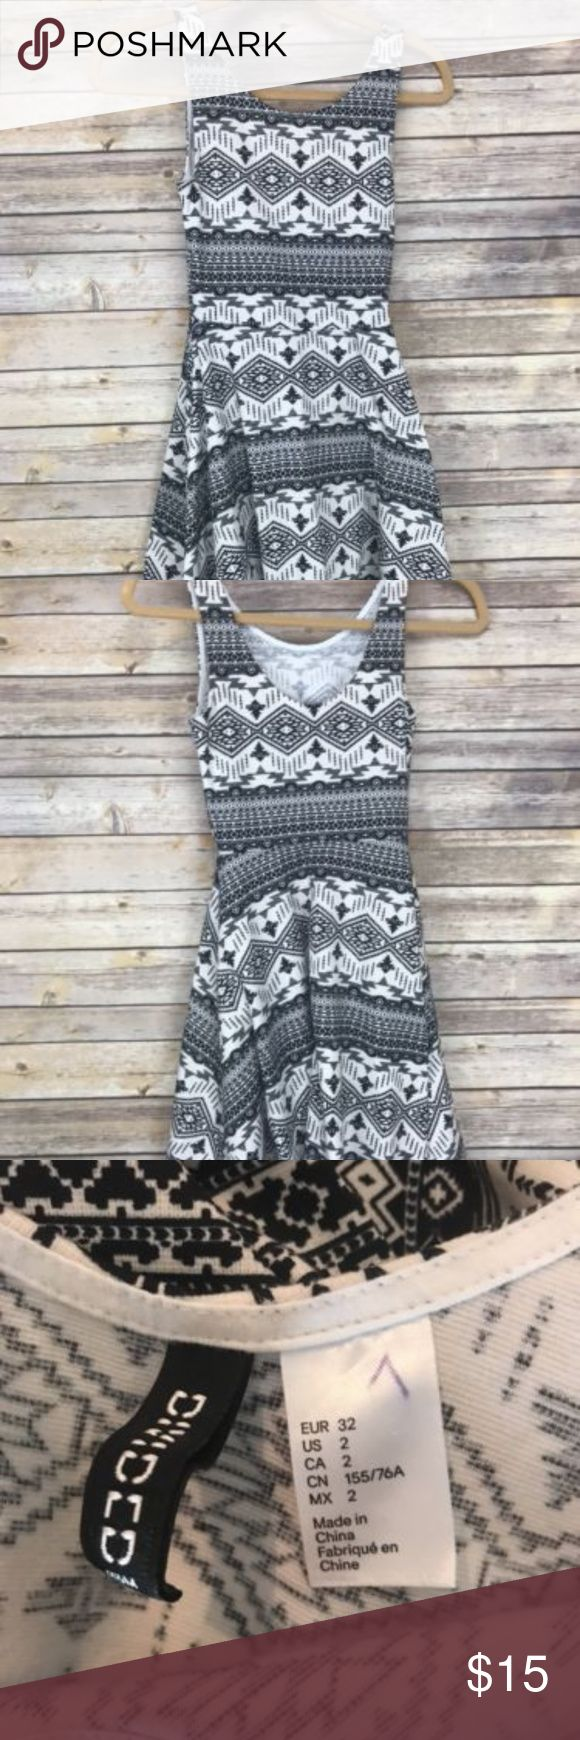 "Aztec Sleeveless Dress H&M Divided Dress Women's Size 2 Black White Strapless Aztec  Flat Lay Measurements:  Armpit to armpit:  13""  Length: 26"" Divided Dresses"